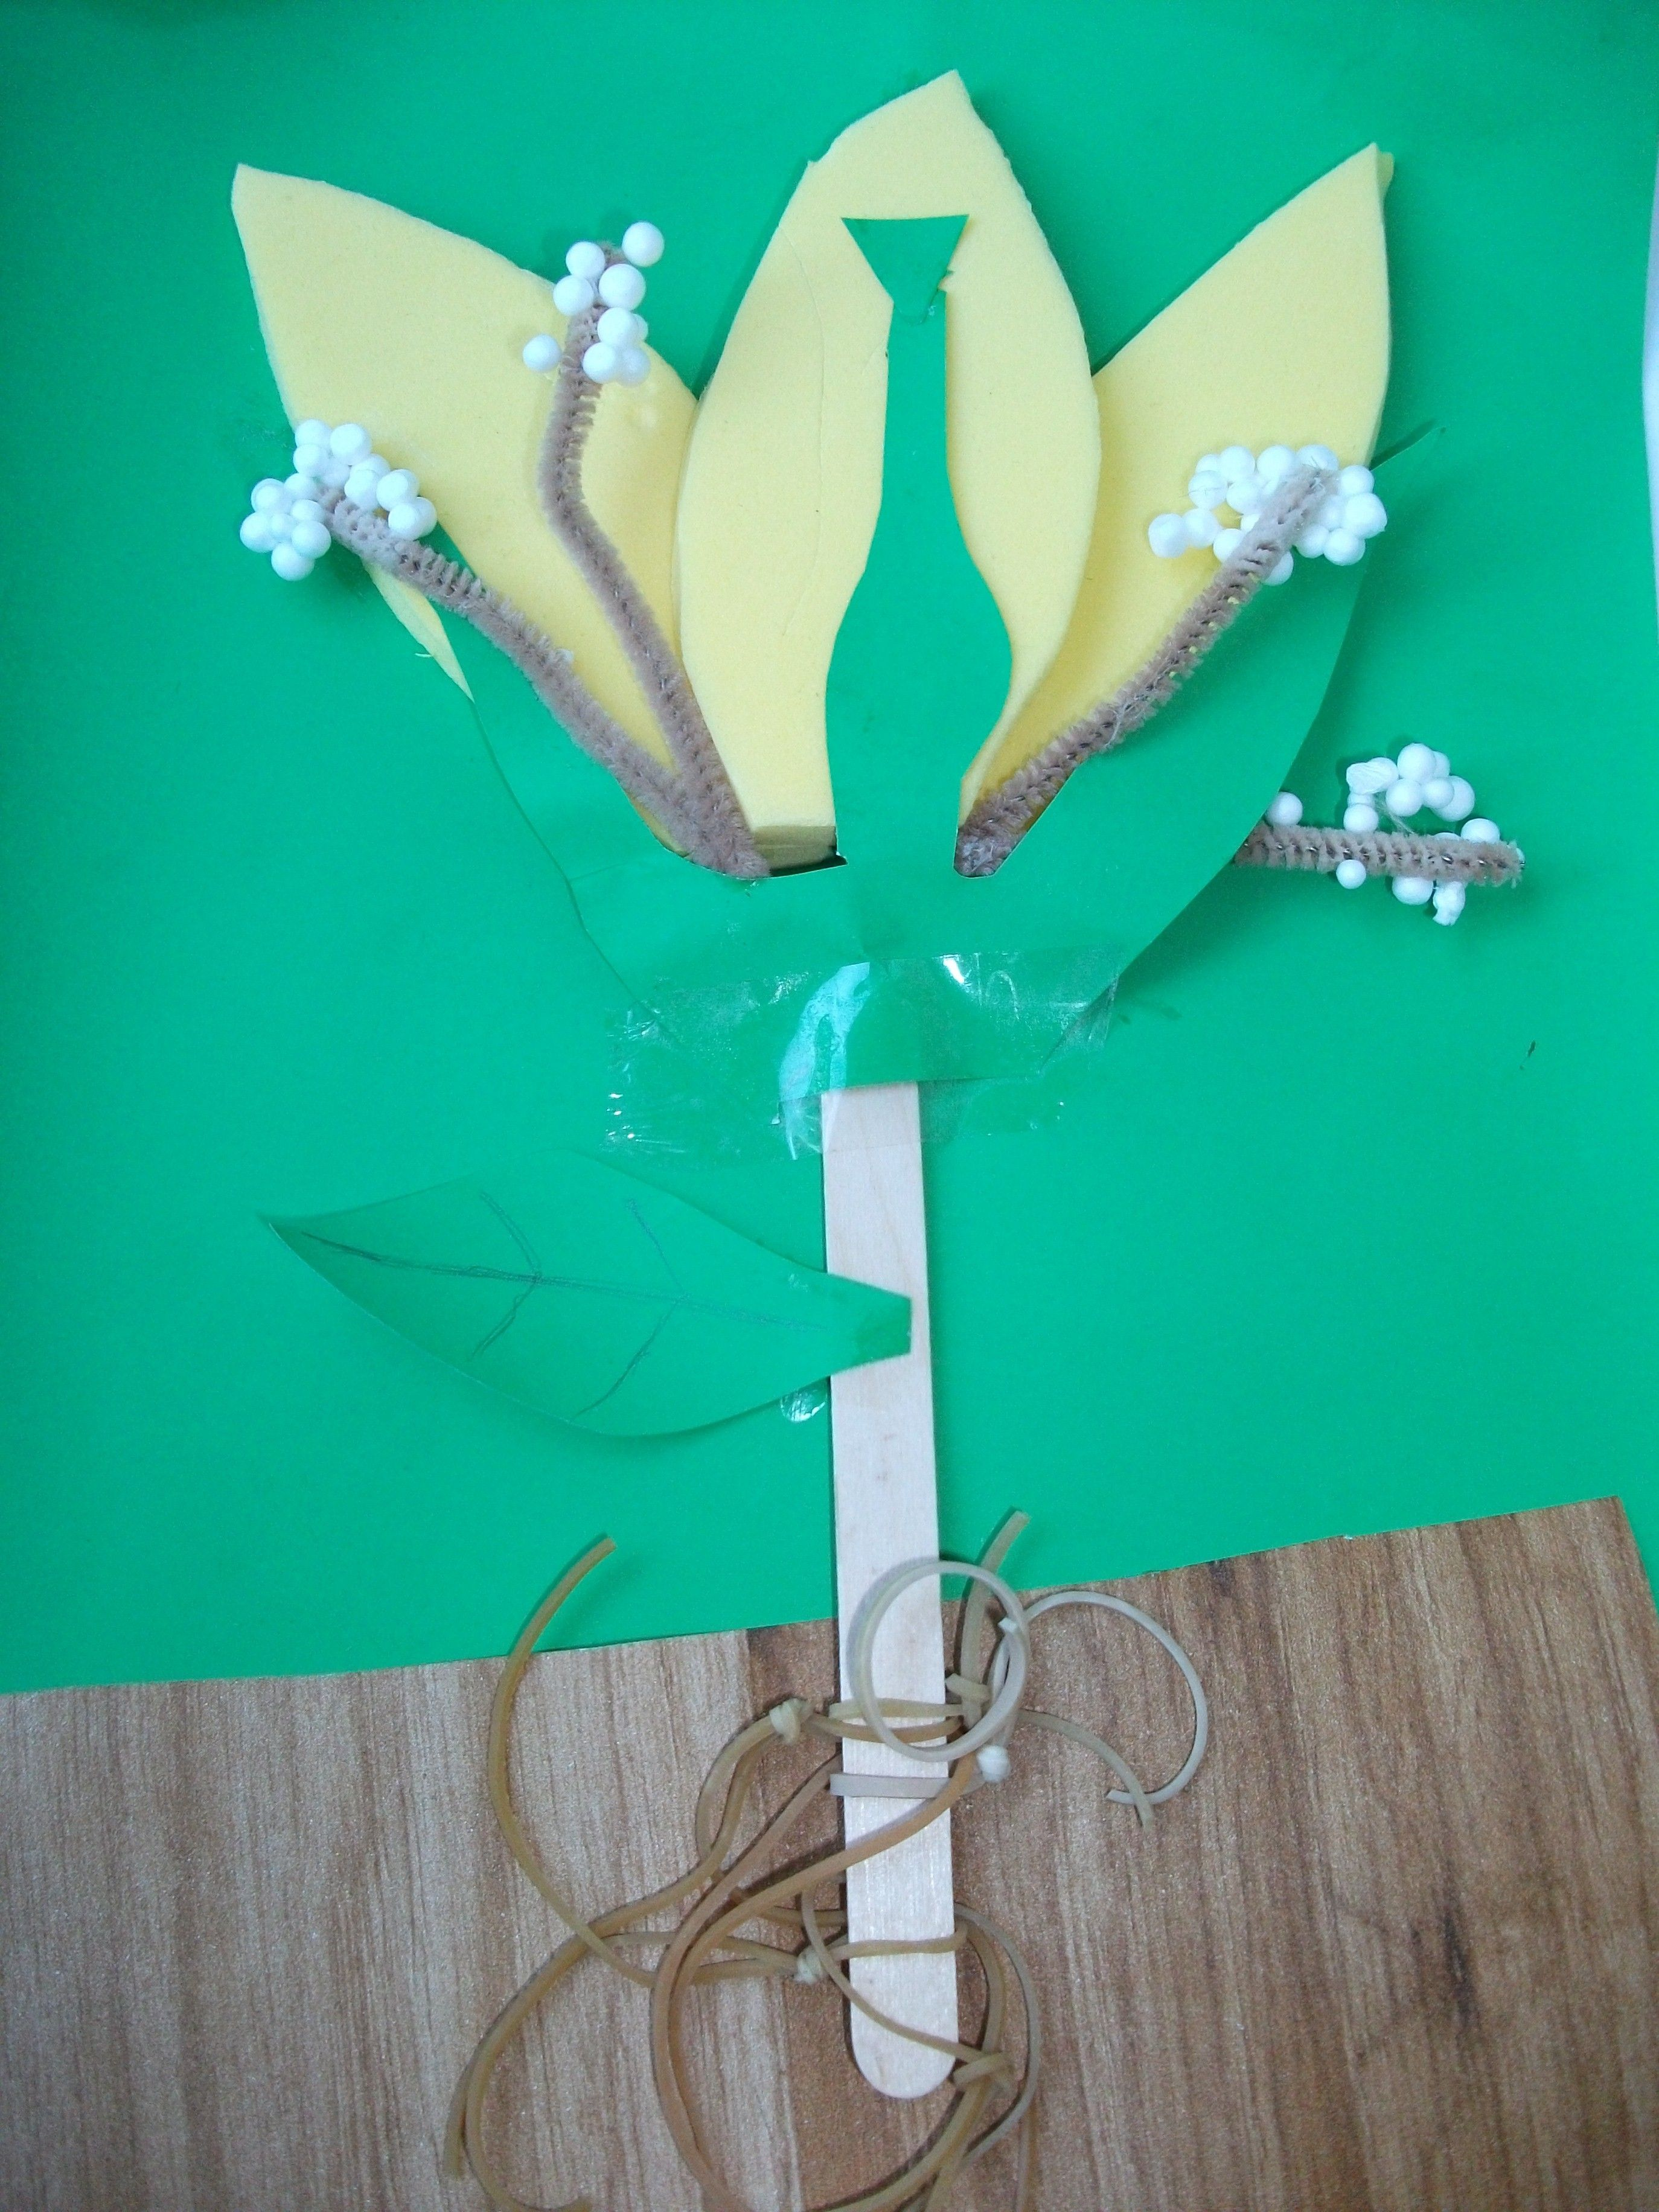 Cross-section of a flower (KS2 Science lesson idea ...